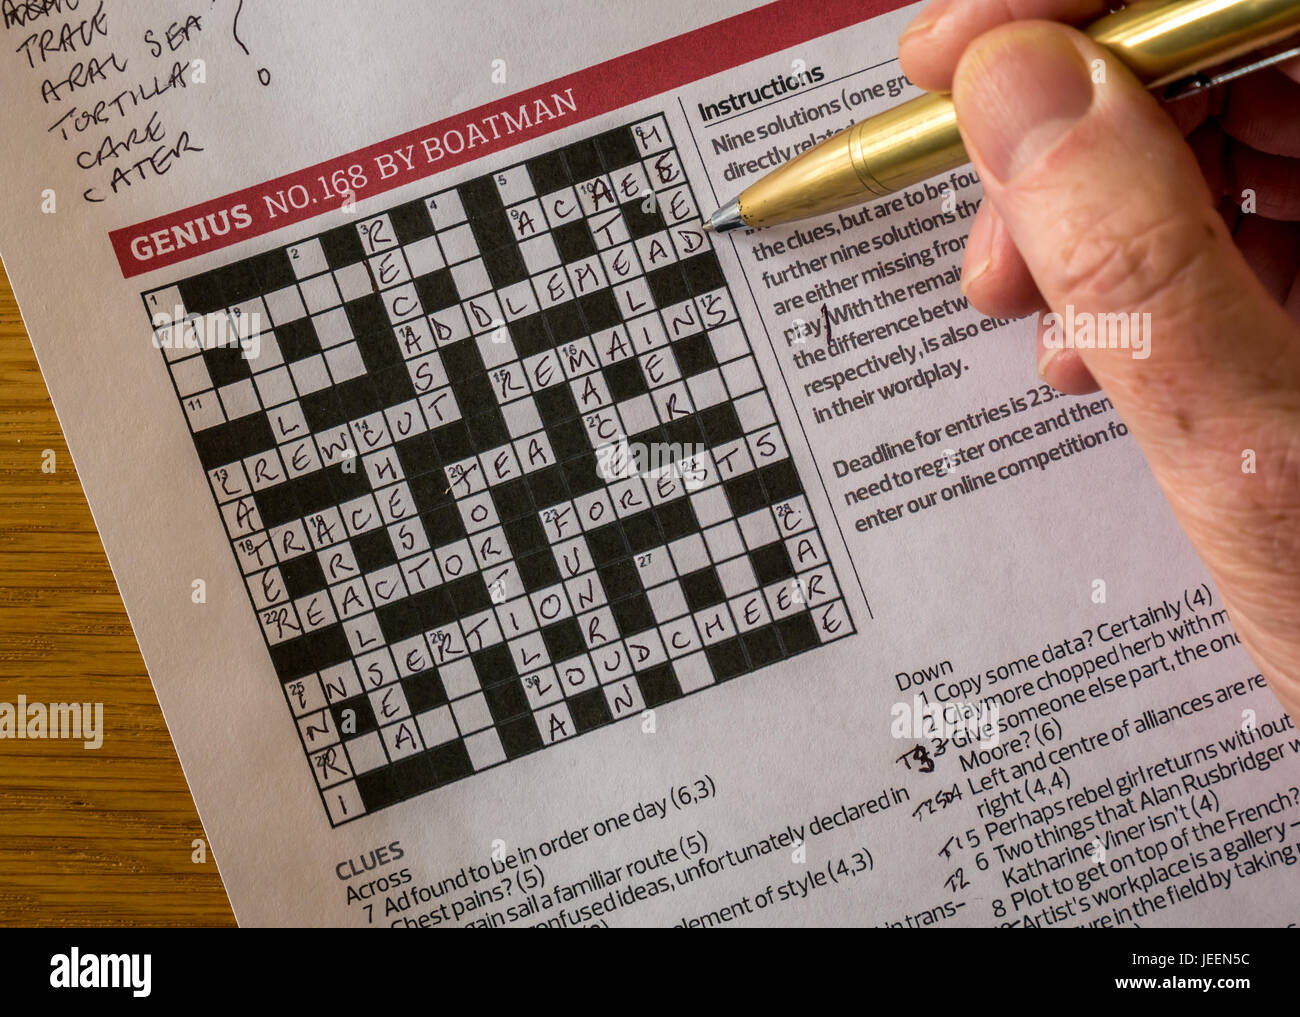 Solving Complicated Crossword Puzzle In The Guardian Newspaper Called Genius By Setter Nom De Plume Boatman With Mans Hand Holding Pen